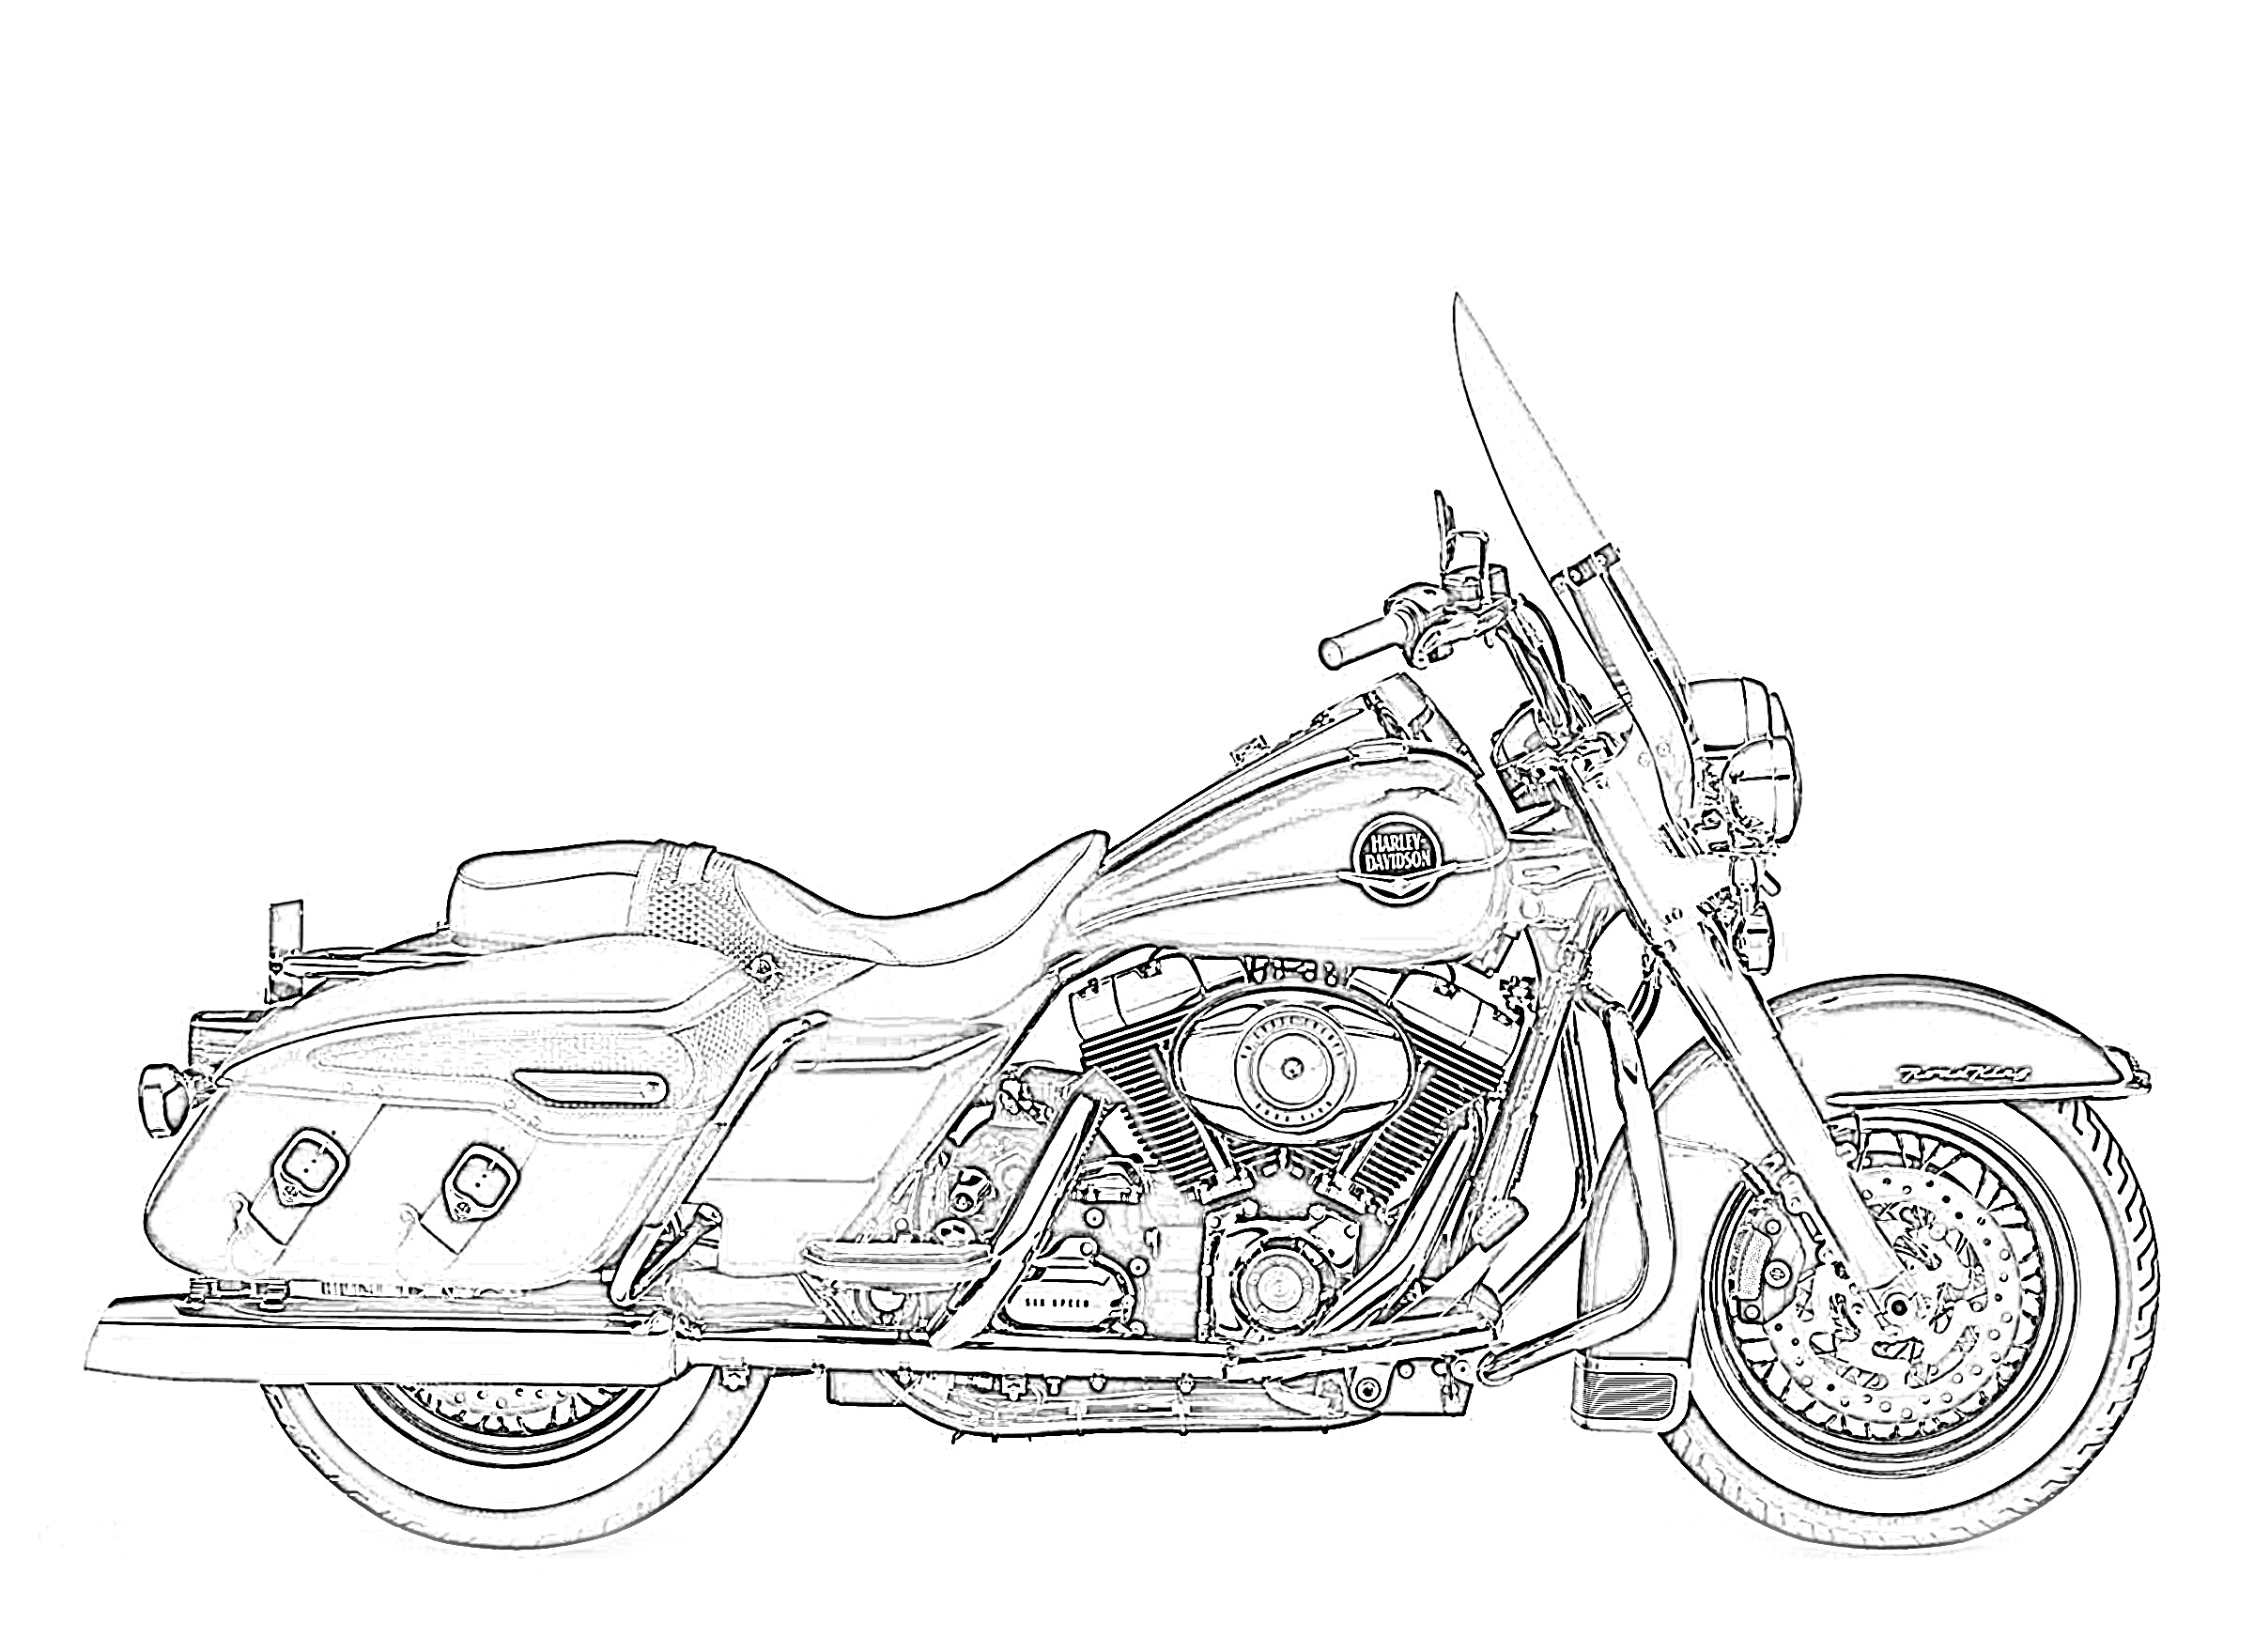 Harley Davidson road king sideview coloring page